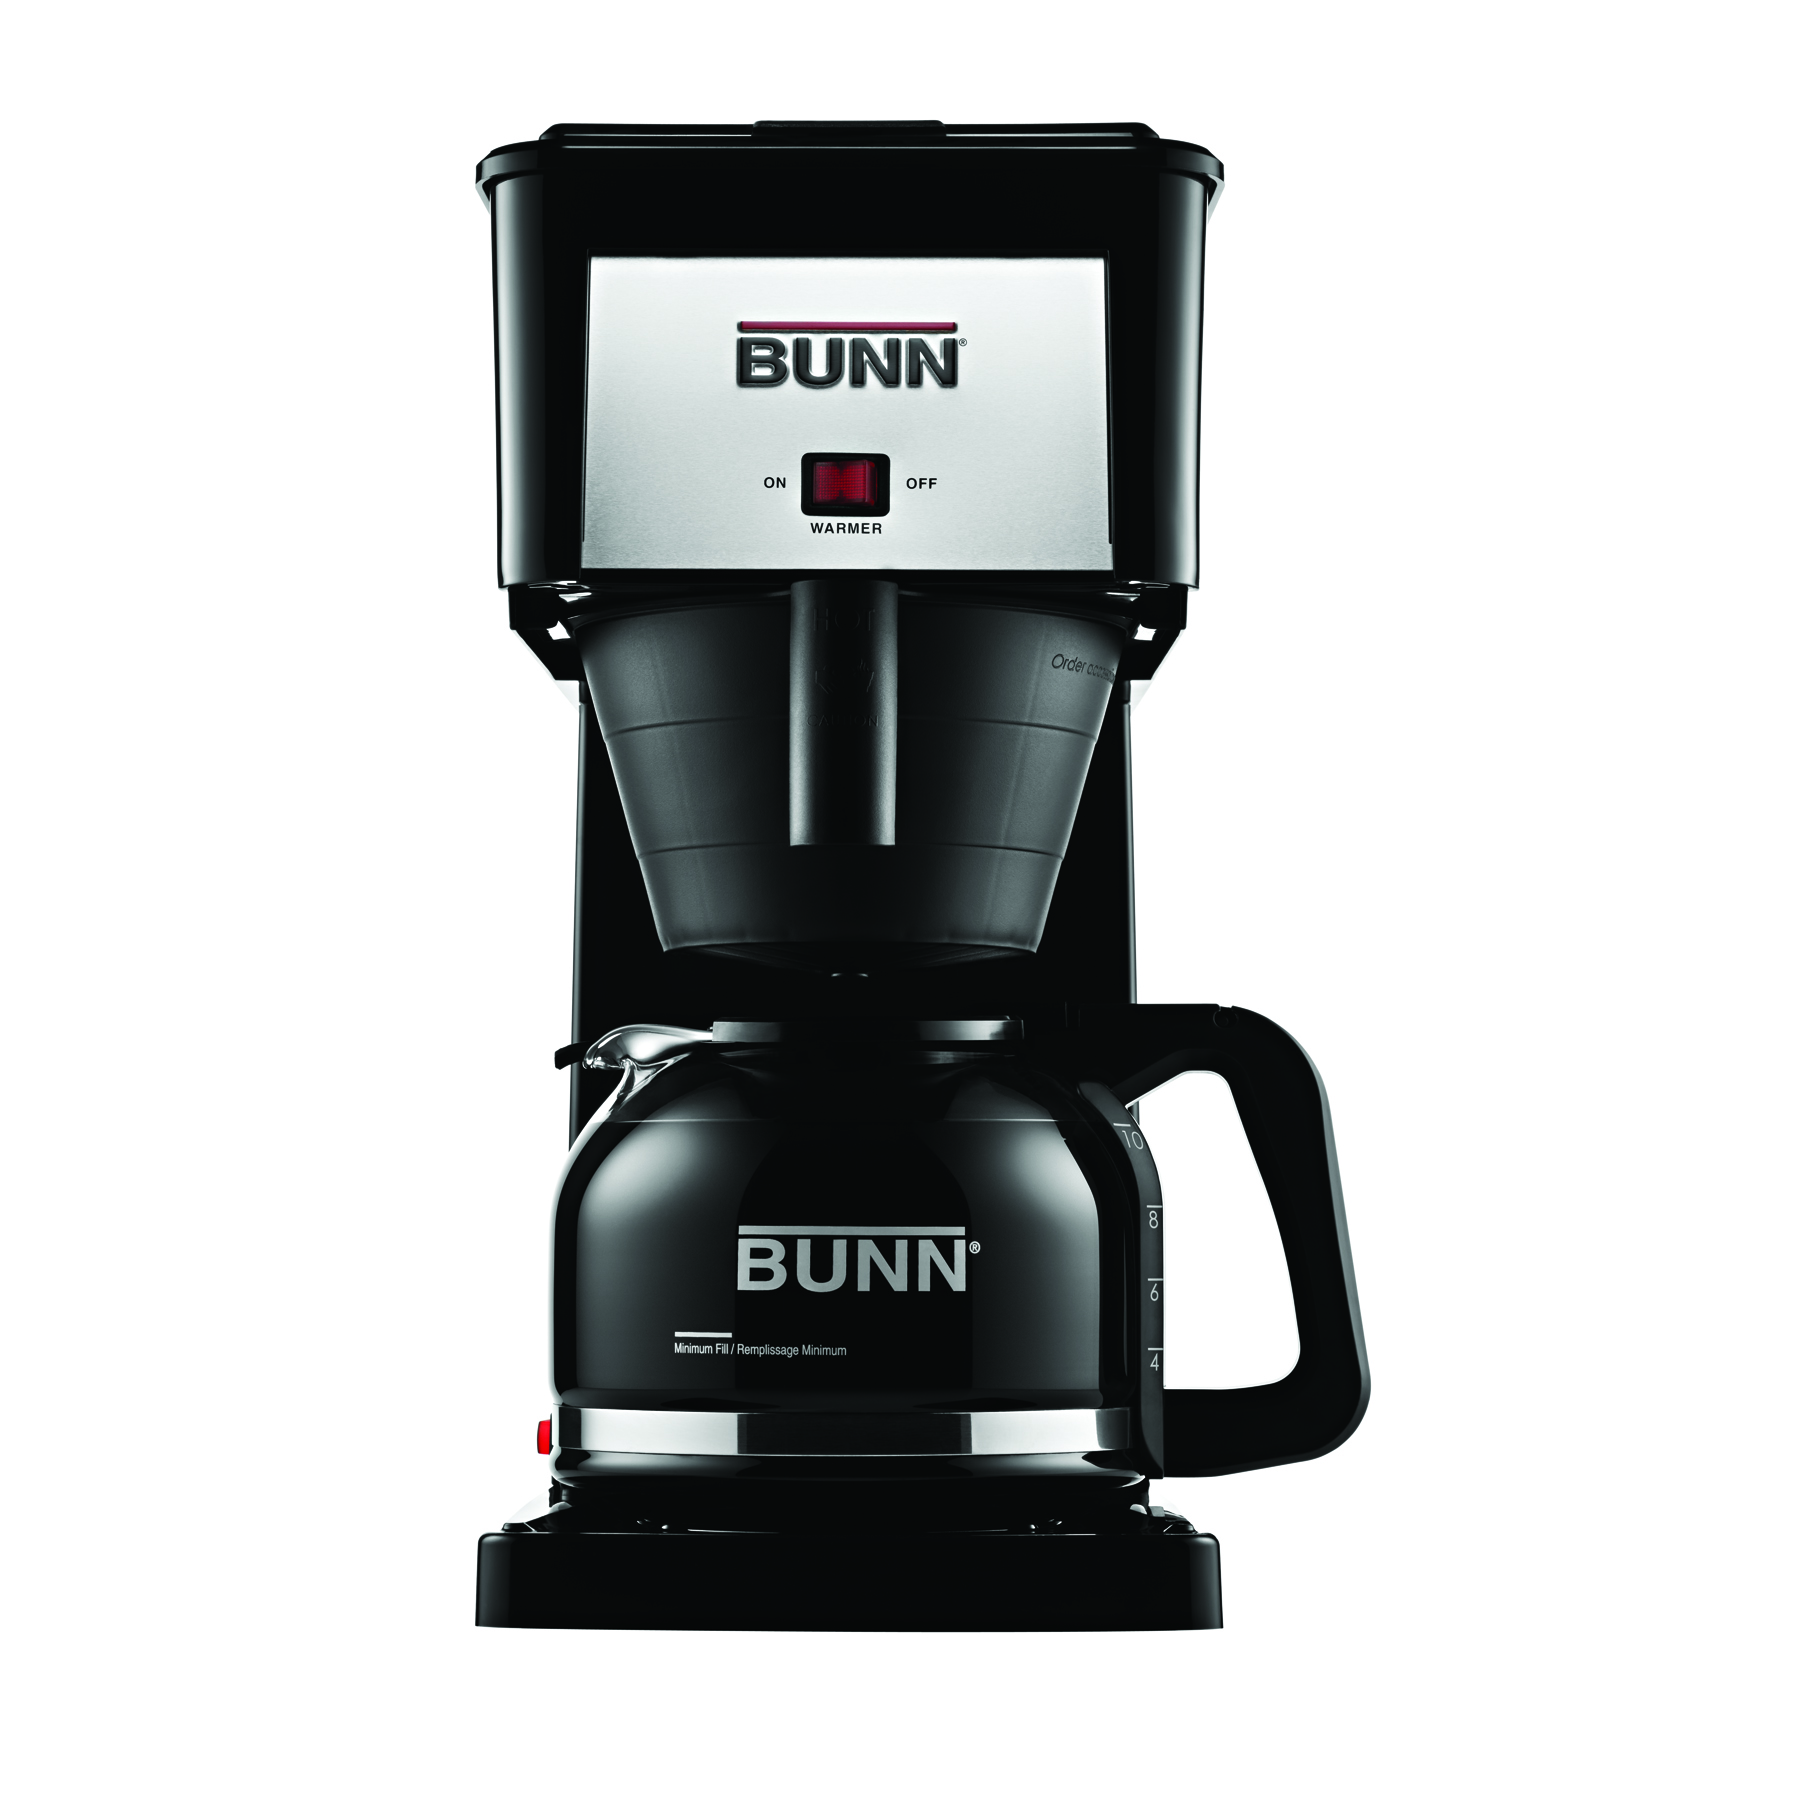 BUNN® Speed Brew® Classic Black Coffee Maker, Model GRB